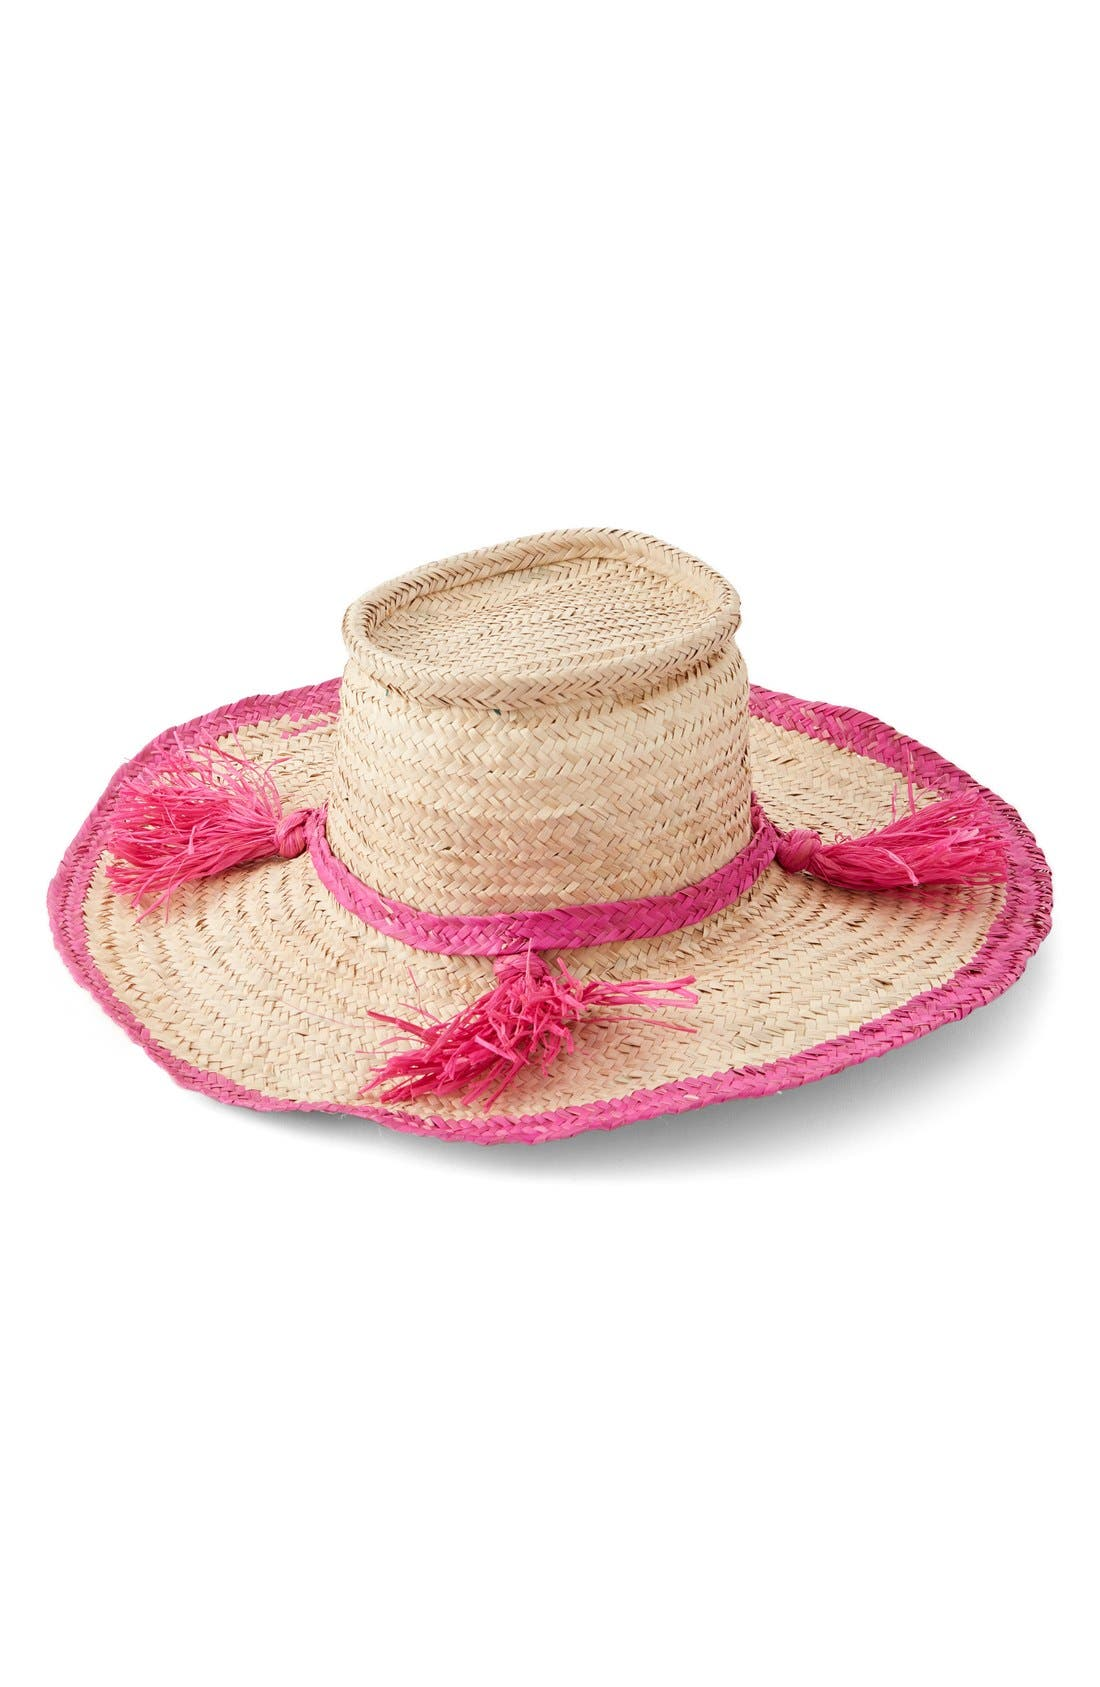 Alternate Image 3  - indego africa Woven Tassel Hat